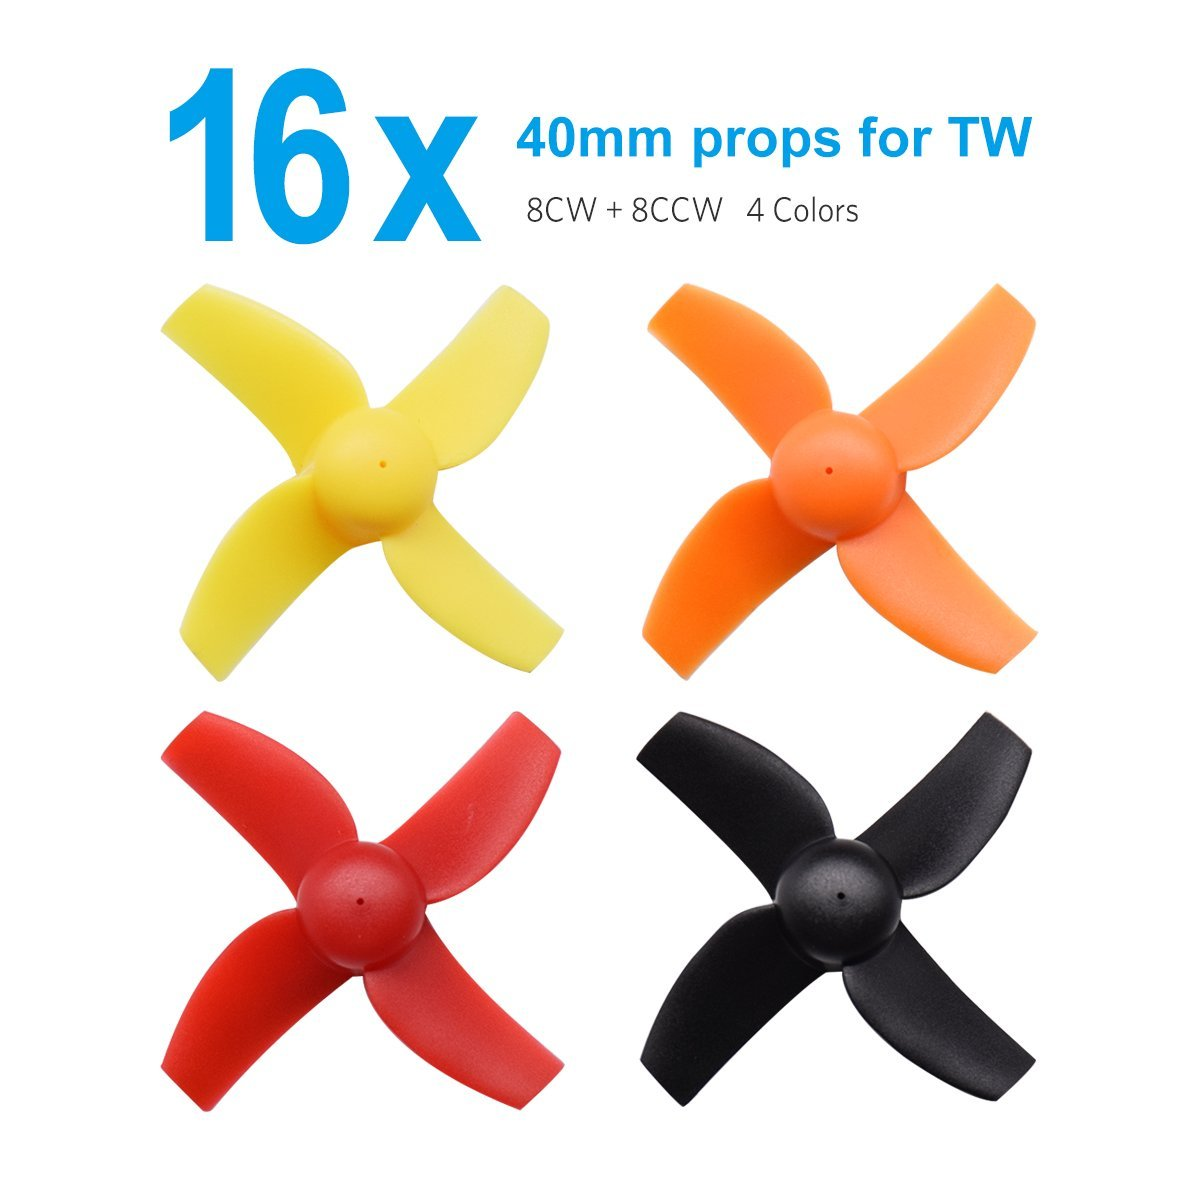 16pcs 40mm 4-blade Micro Whoop Propellers with 1.0mm Shaft for Inductrix FPV Plus Kingkong Tiny 7 etc квадрокоптер blade inductrix fpv blh8500